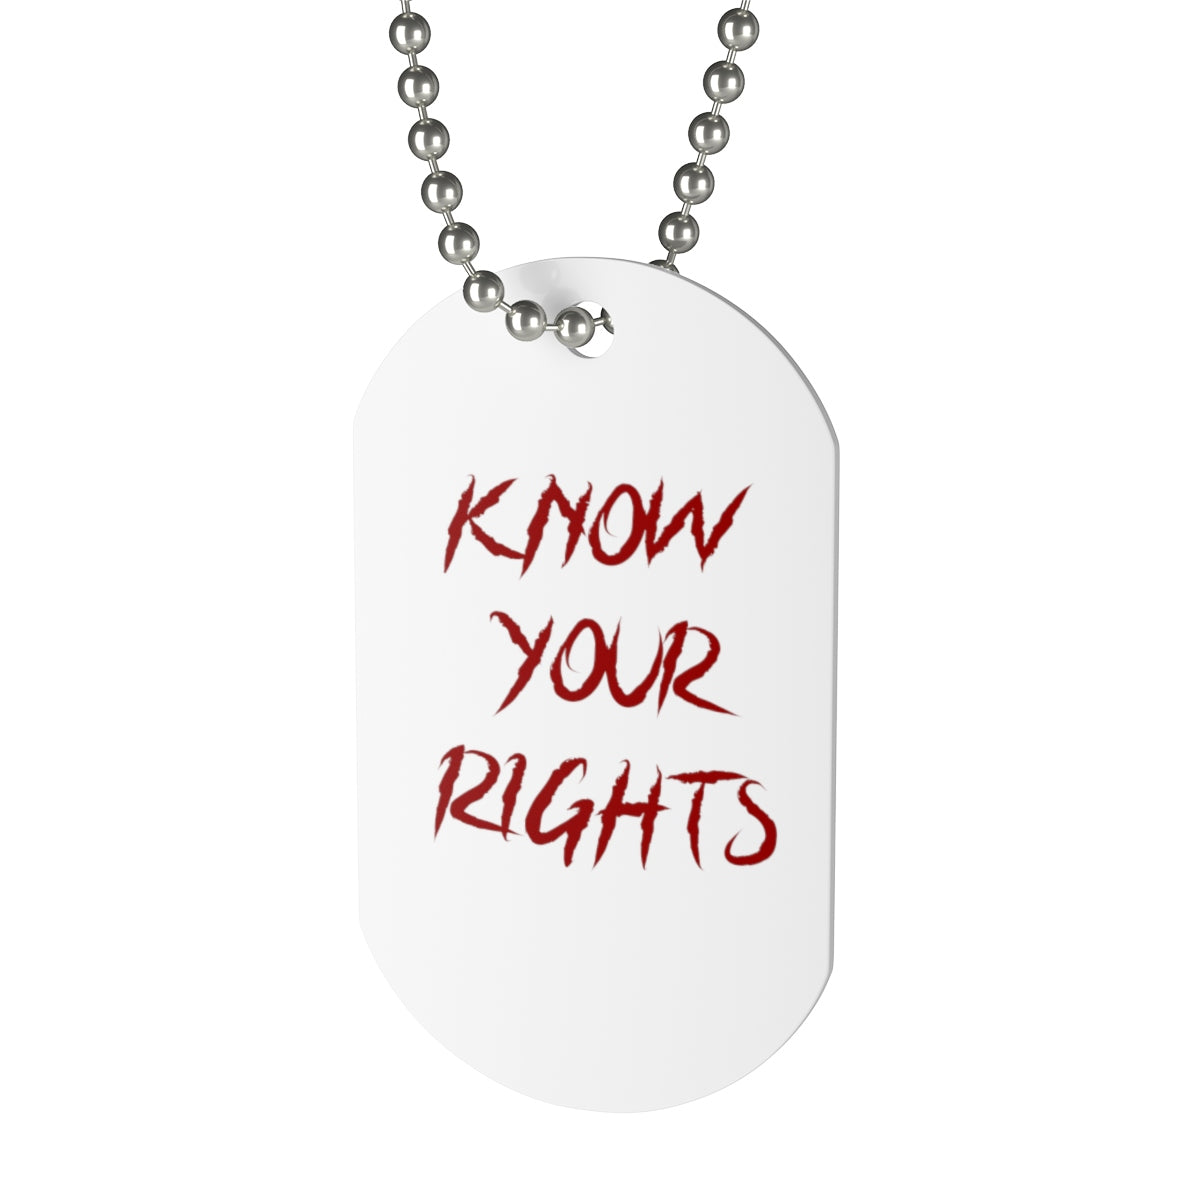 Know Your Rights dog tag